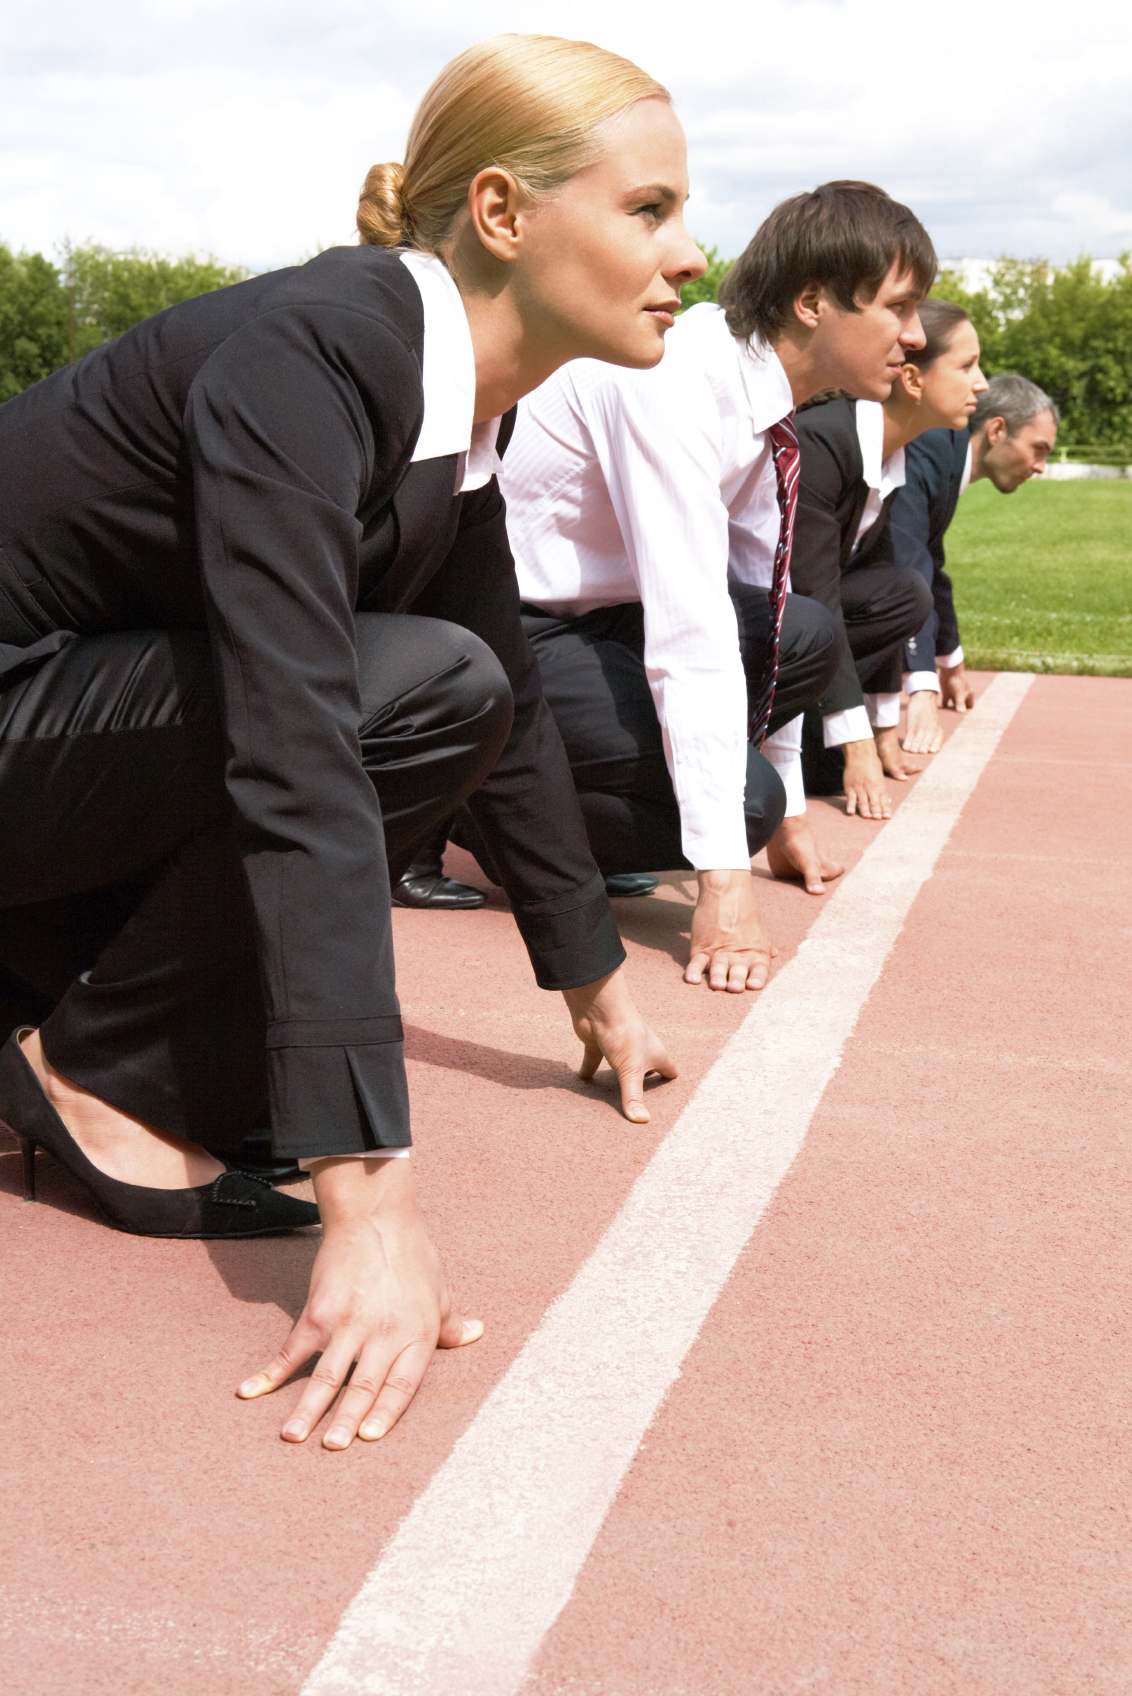 Stock photo of business men and women in business attire at the starting line of a track